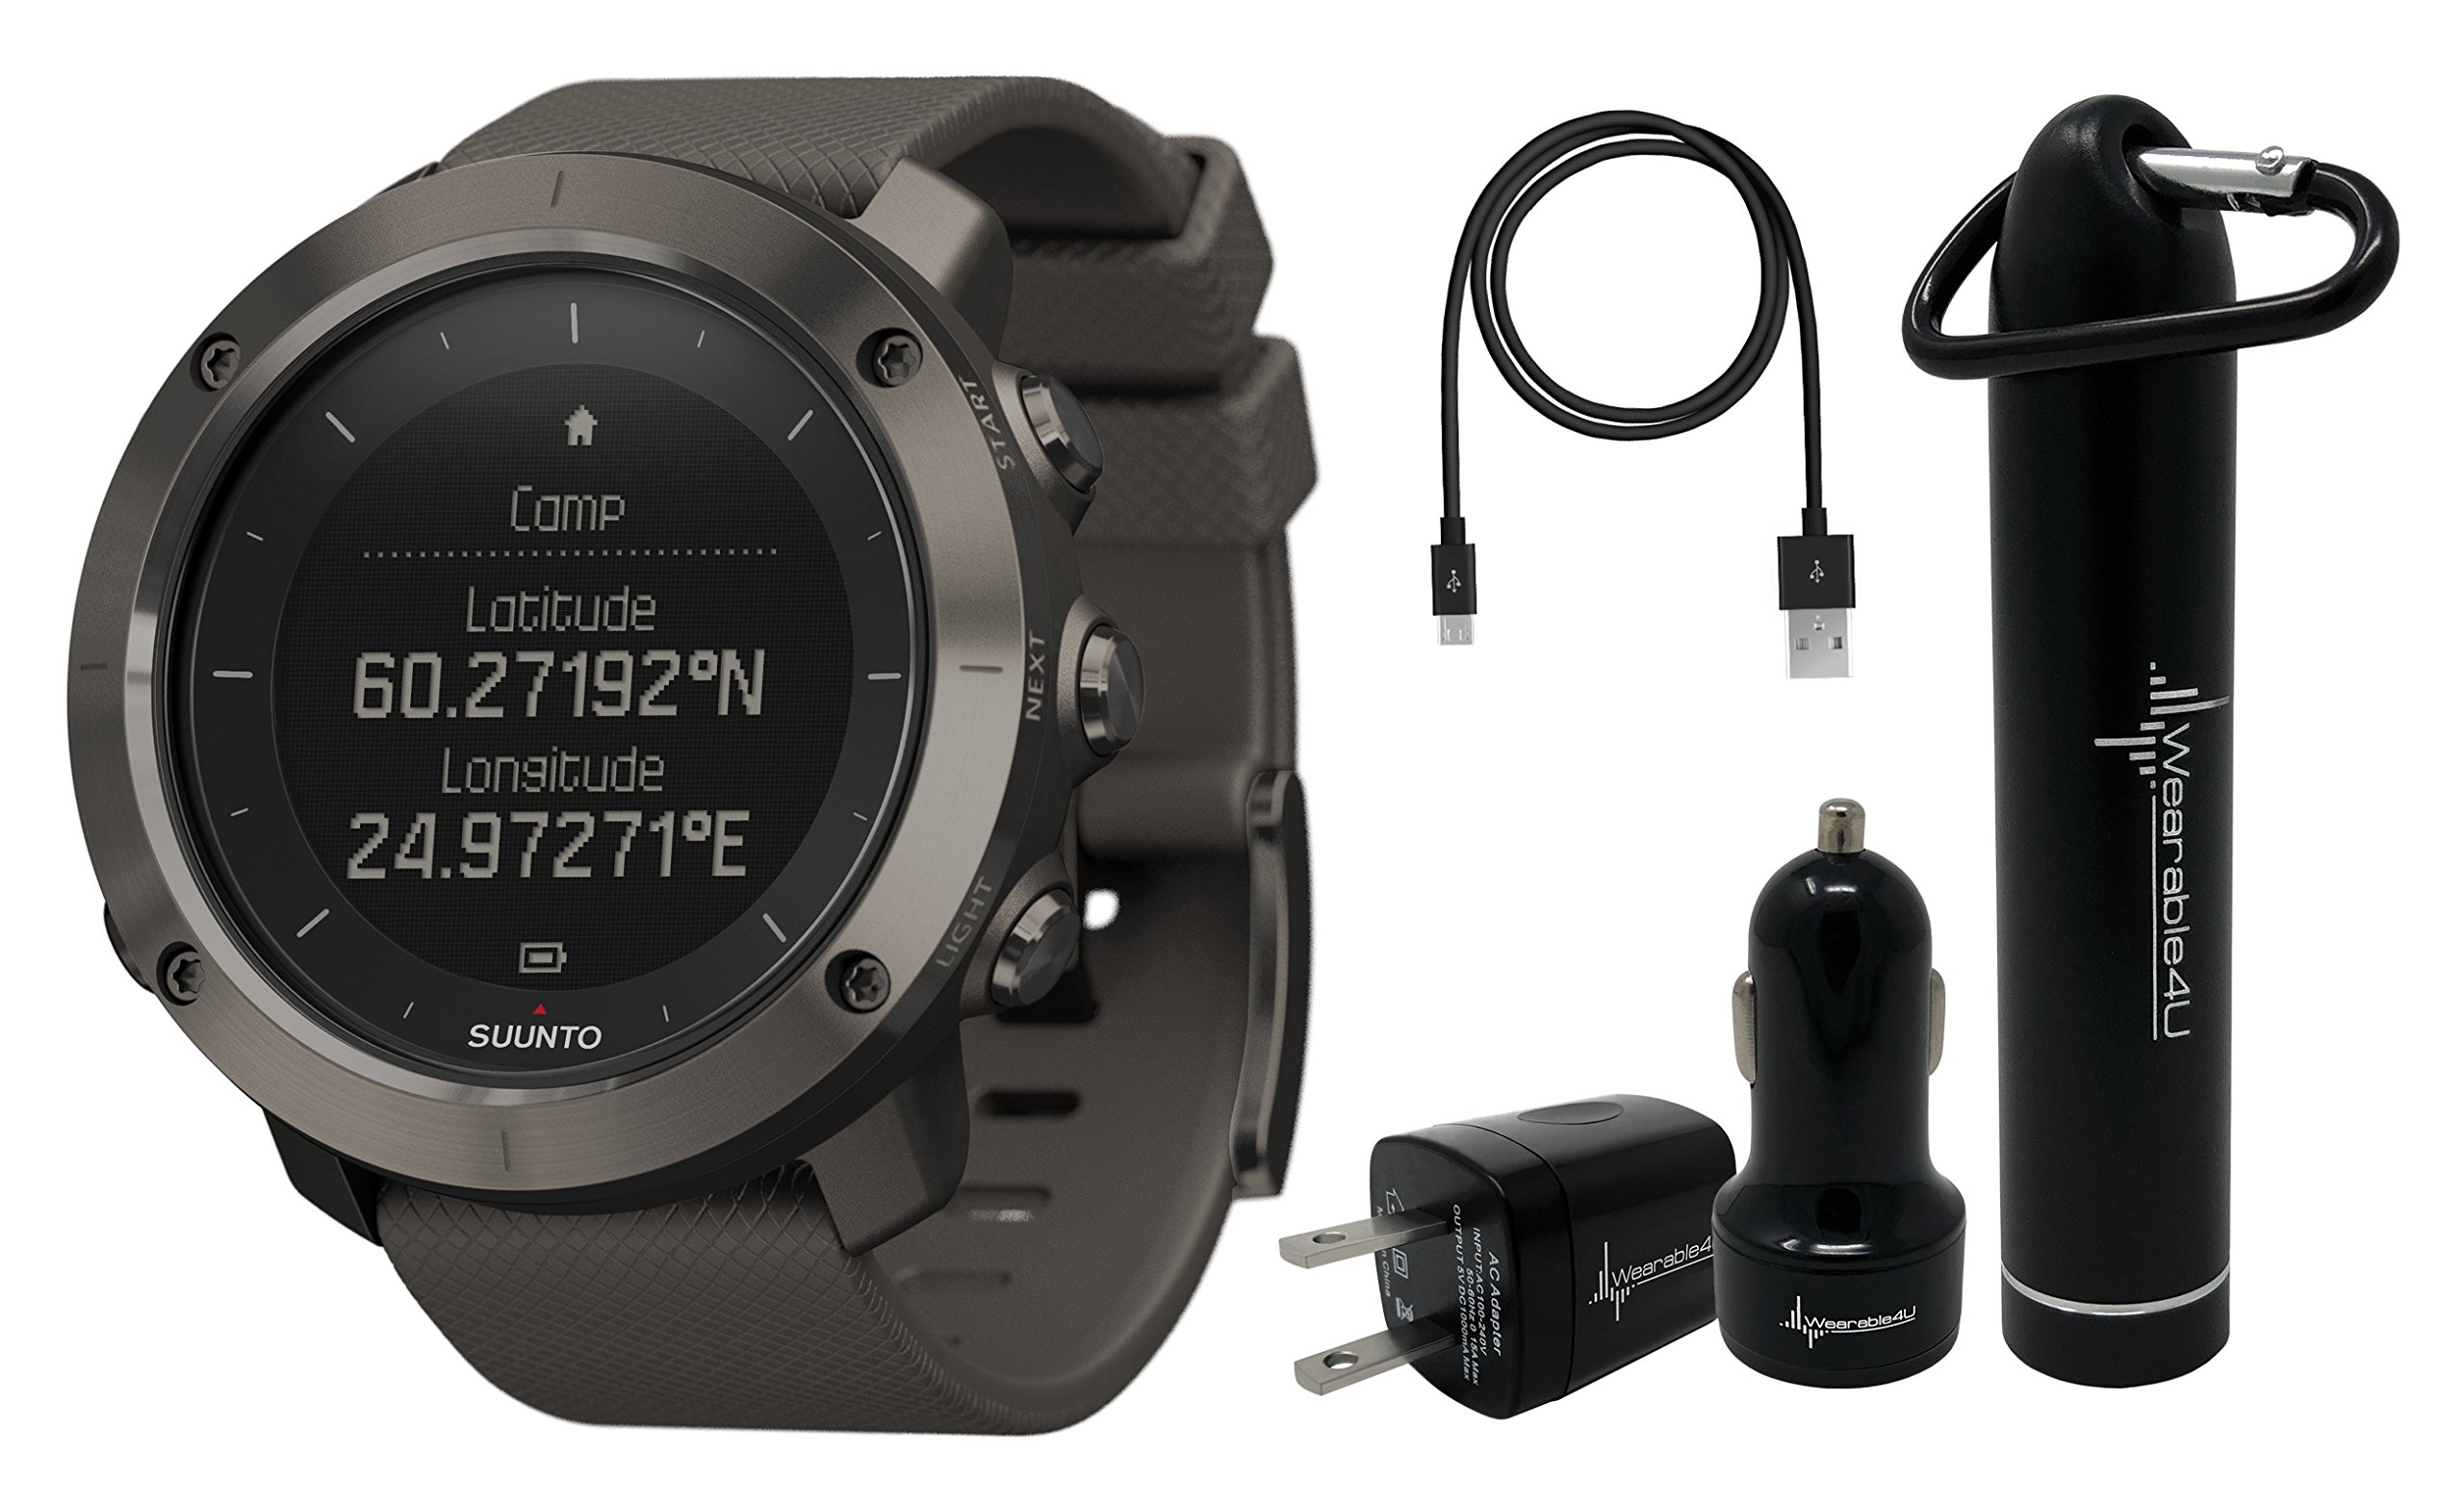 Suunto Traverse GPS Outdoor Hiking Watch with Versatile Navigation Functions and Wearable4U Ultimate Power Pack Bundle (Graphite) by Wearable4u (Image #1)